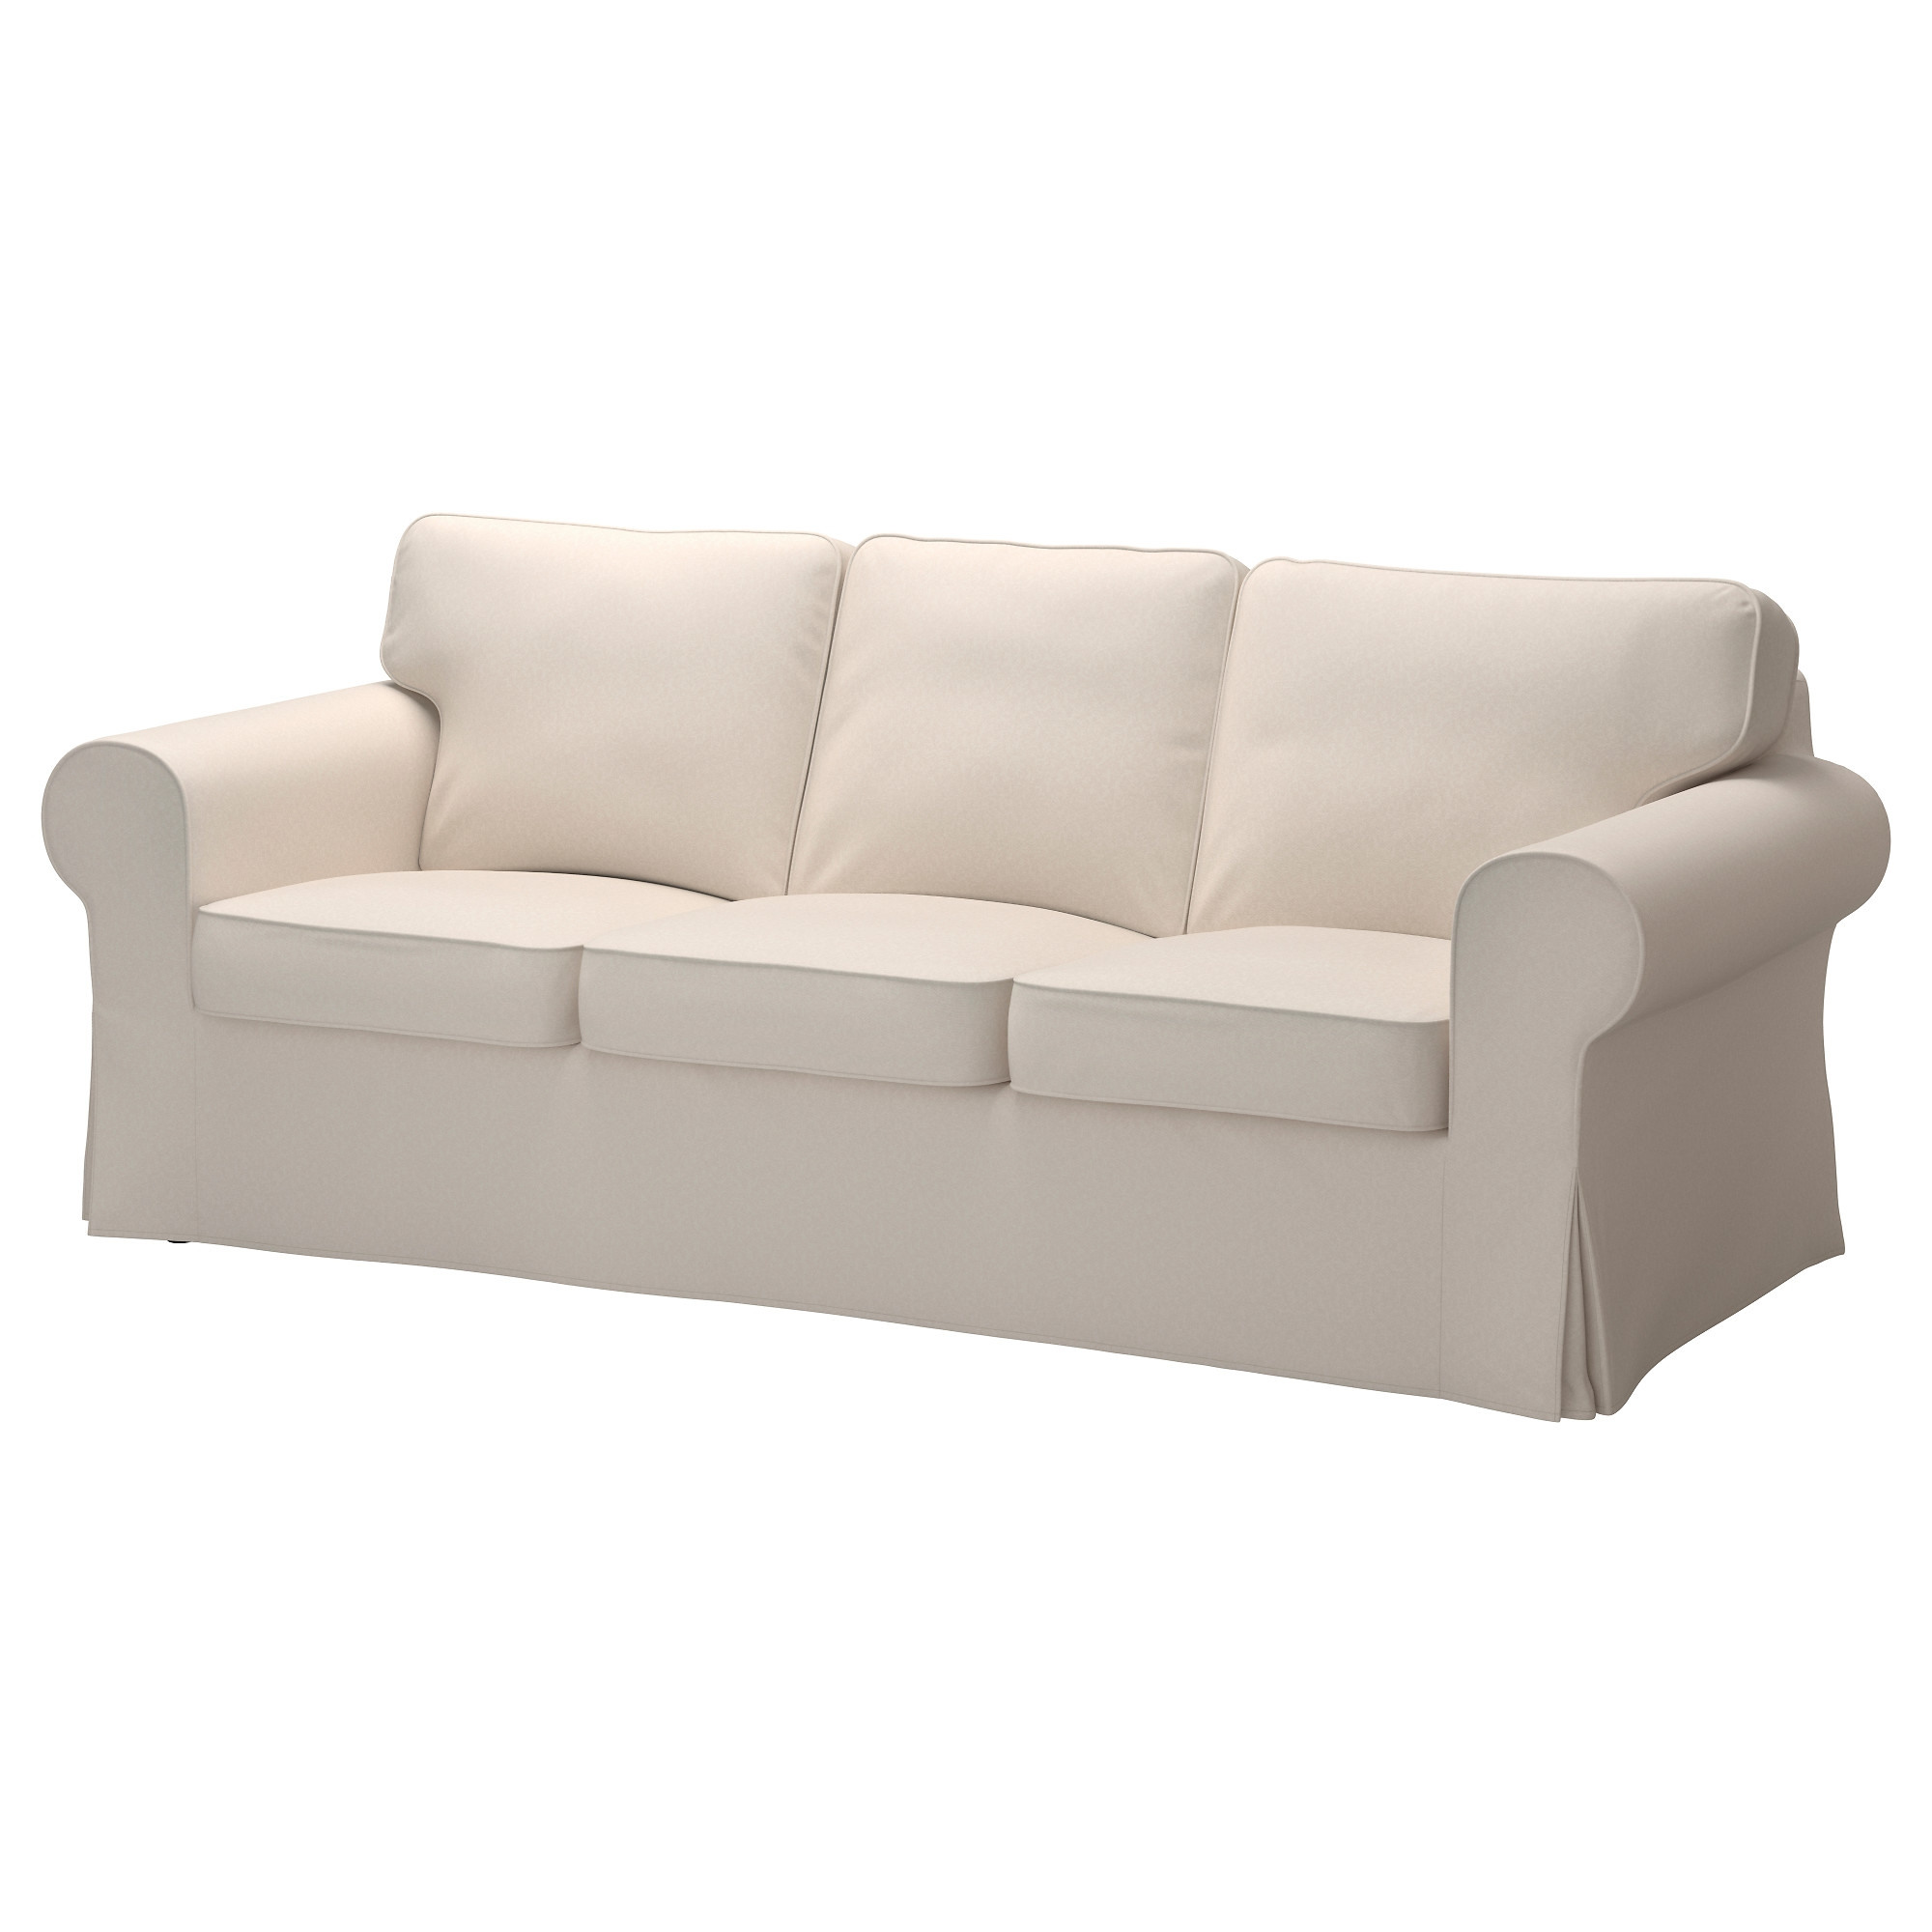 Ektorp Sofa Lofallet Beige Ikea Intended For Sofa With Removable Cover (Image 6 of 15)